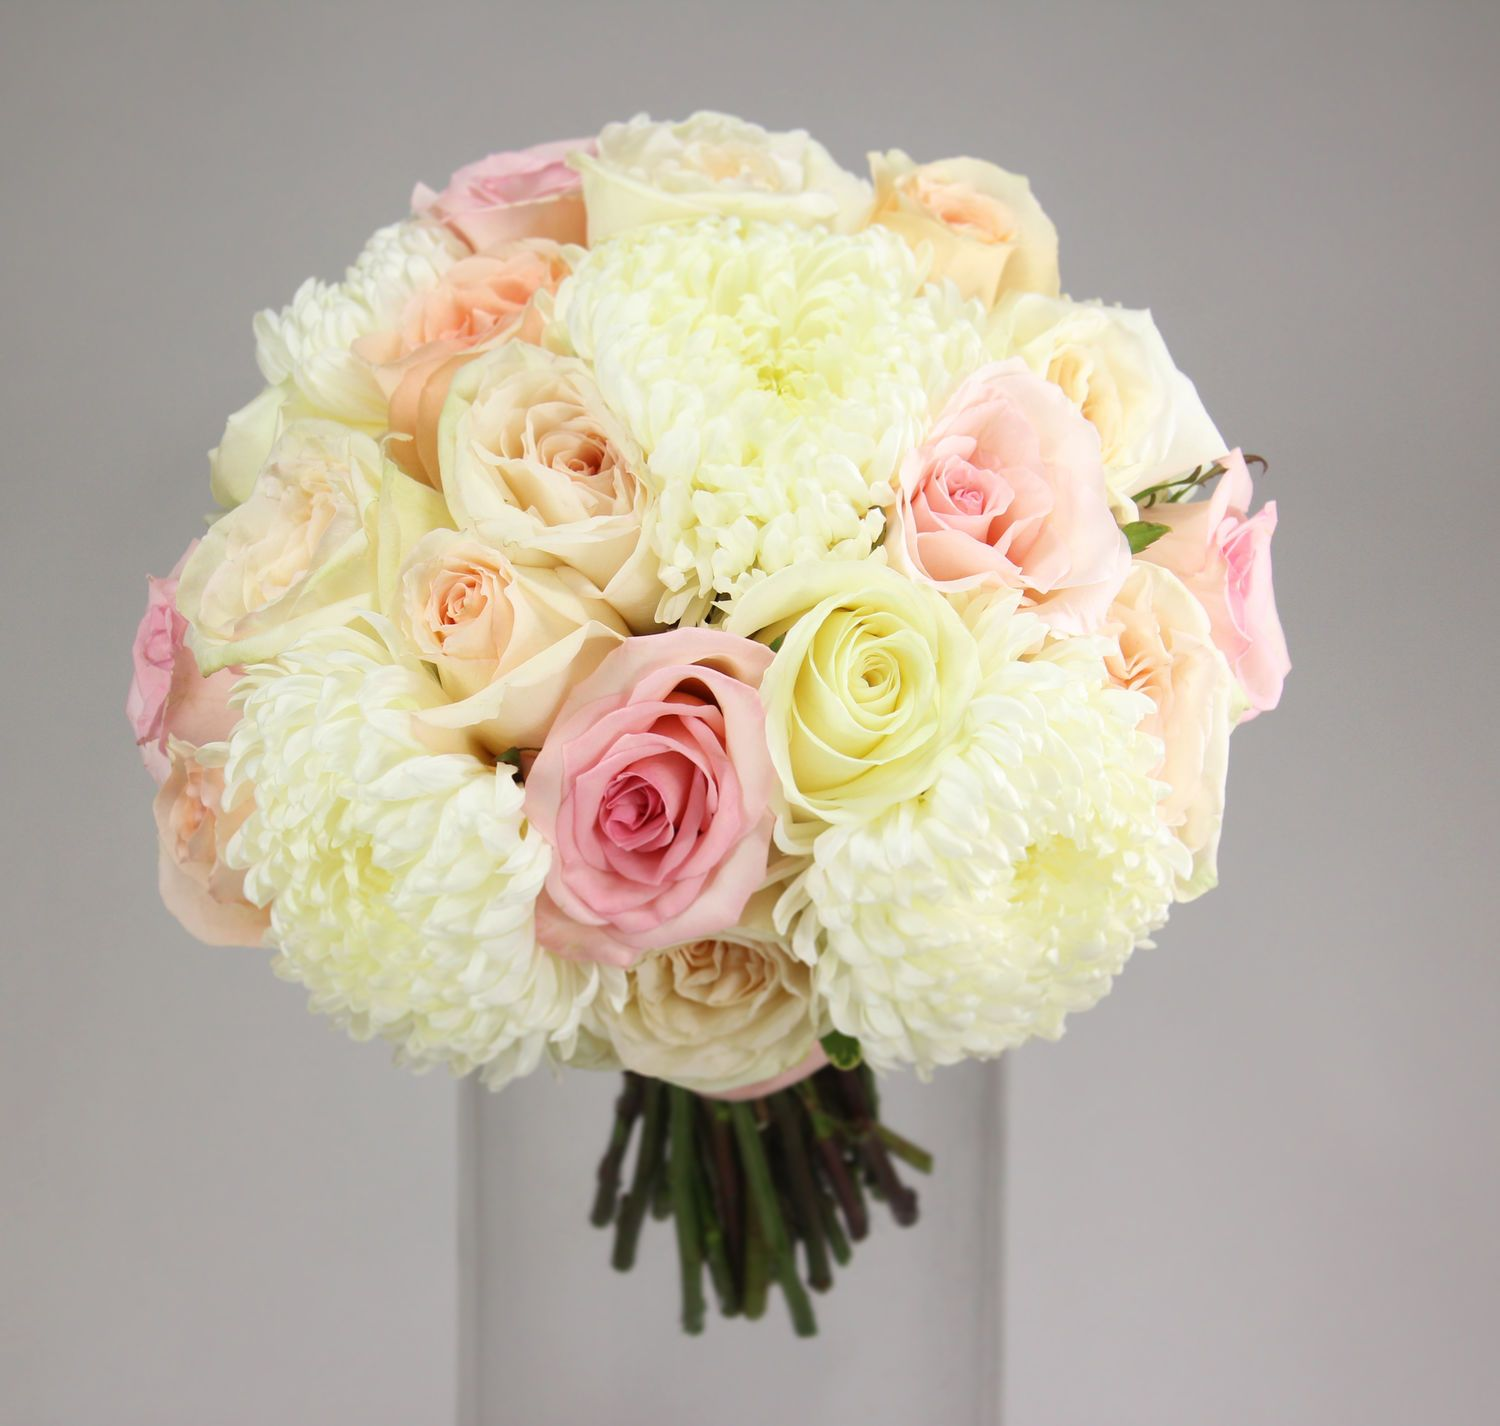 4daa30a5fa7f light and sweet  ivory football mums with ivory soft peach and light pink  roses.